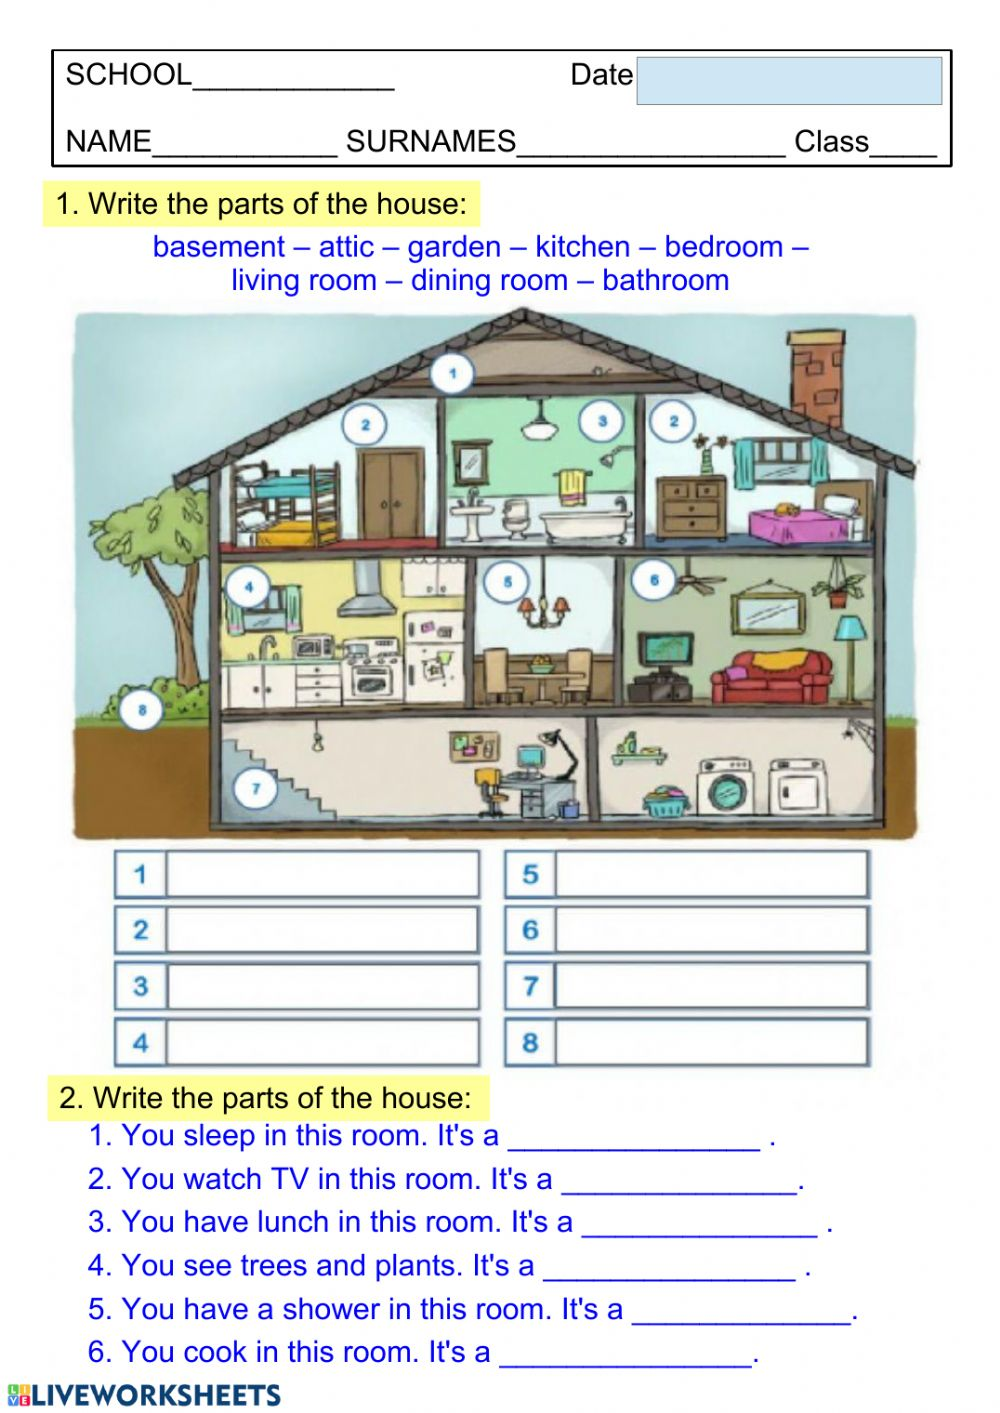 medium resolution of Parts of the house 3 worksheet